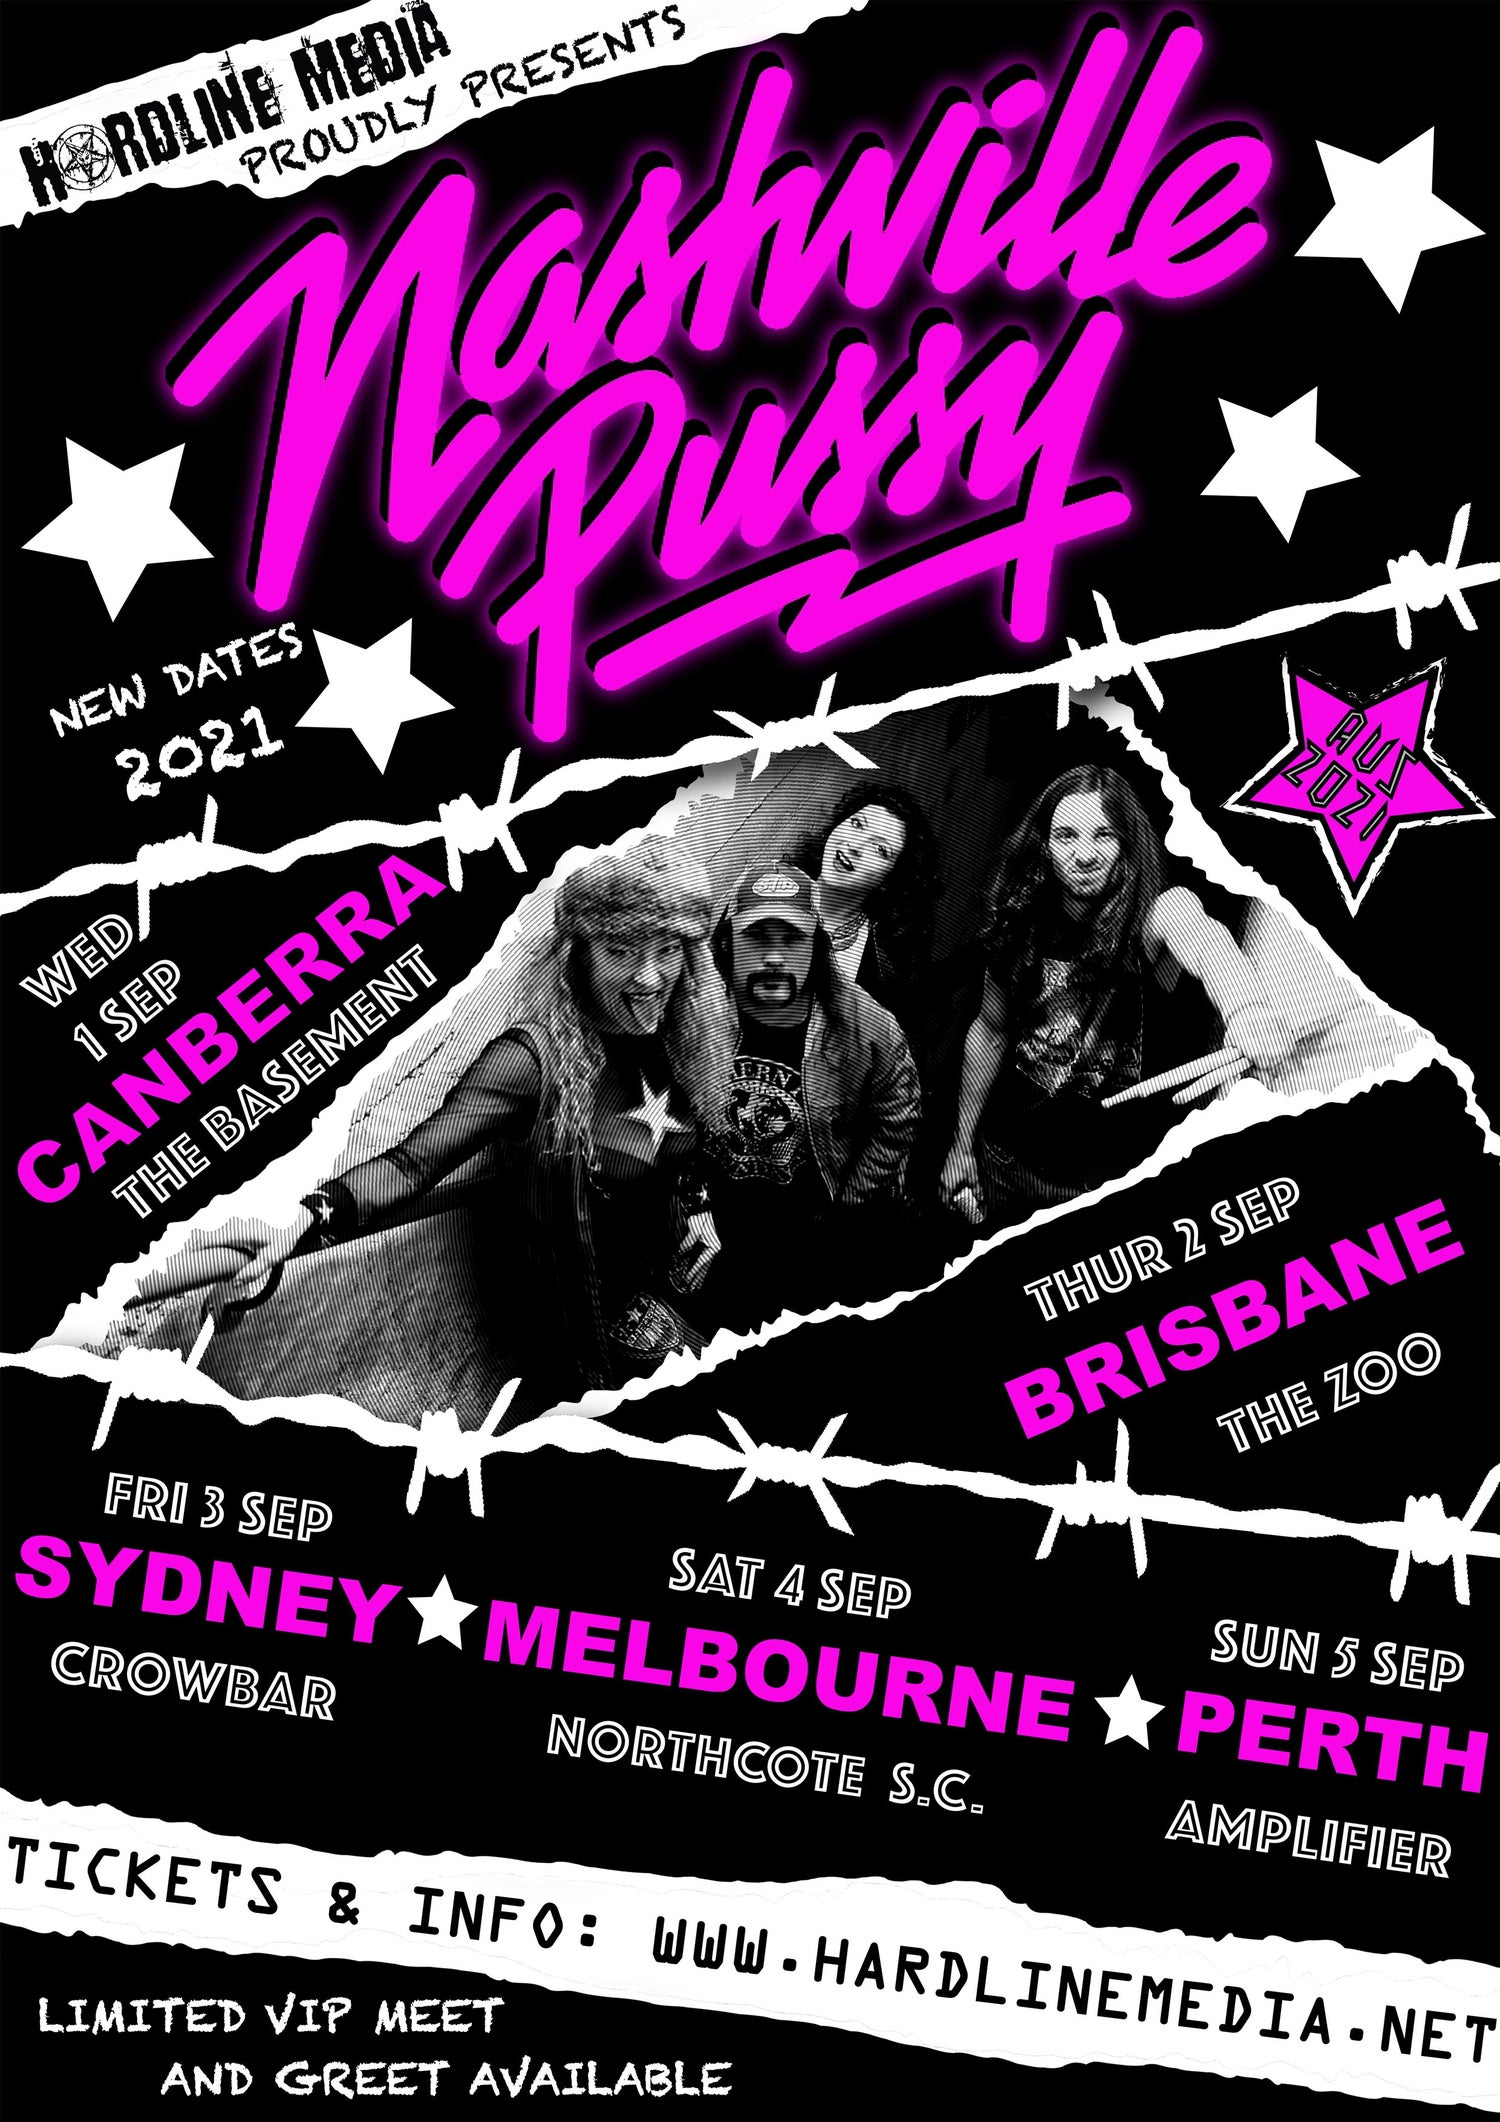 Image of GA TICKET - NASHVILLE PUSSY - MELBOURNE, NORTHCOTE S.C. - SAT 4 SEP 2021